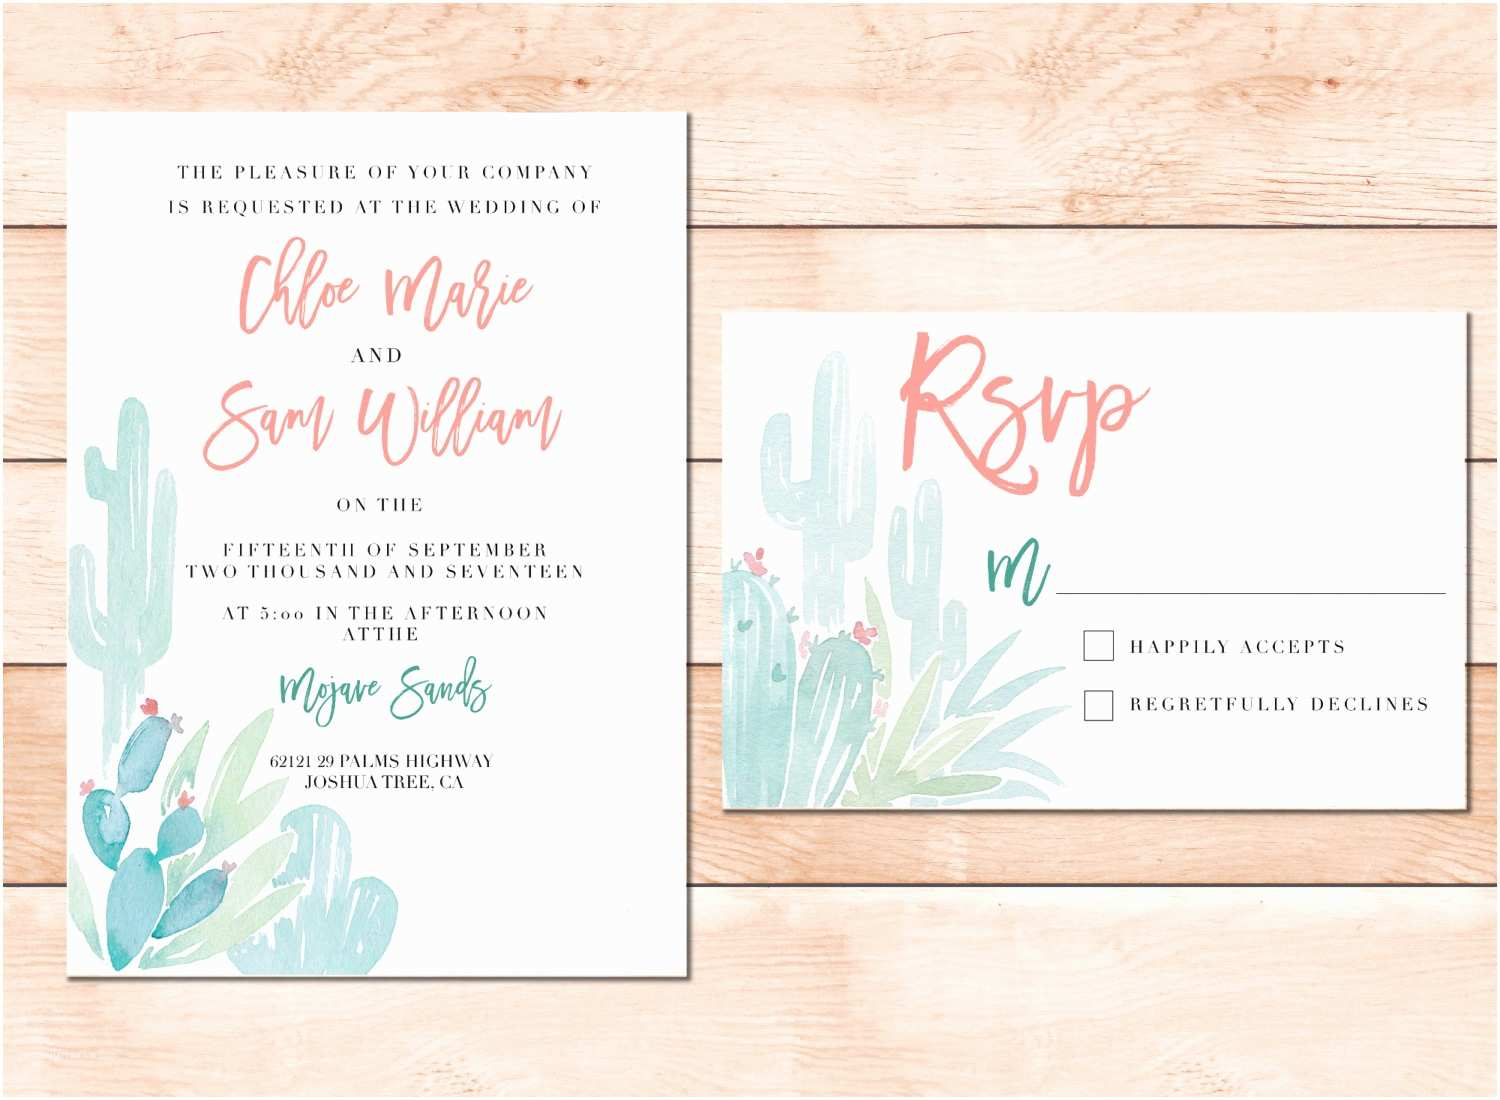 Desert Wedding Invitations Desert Wedding Invitation Set